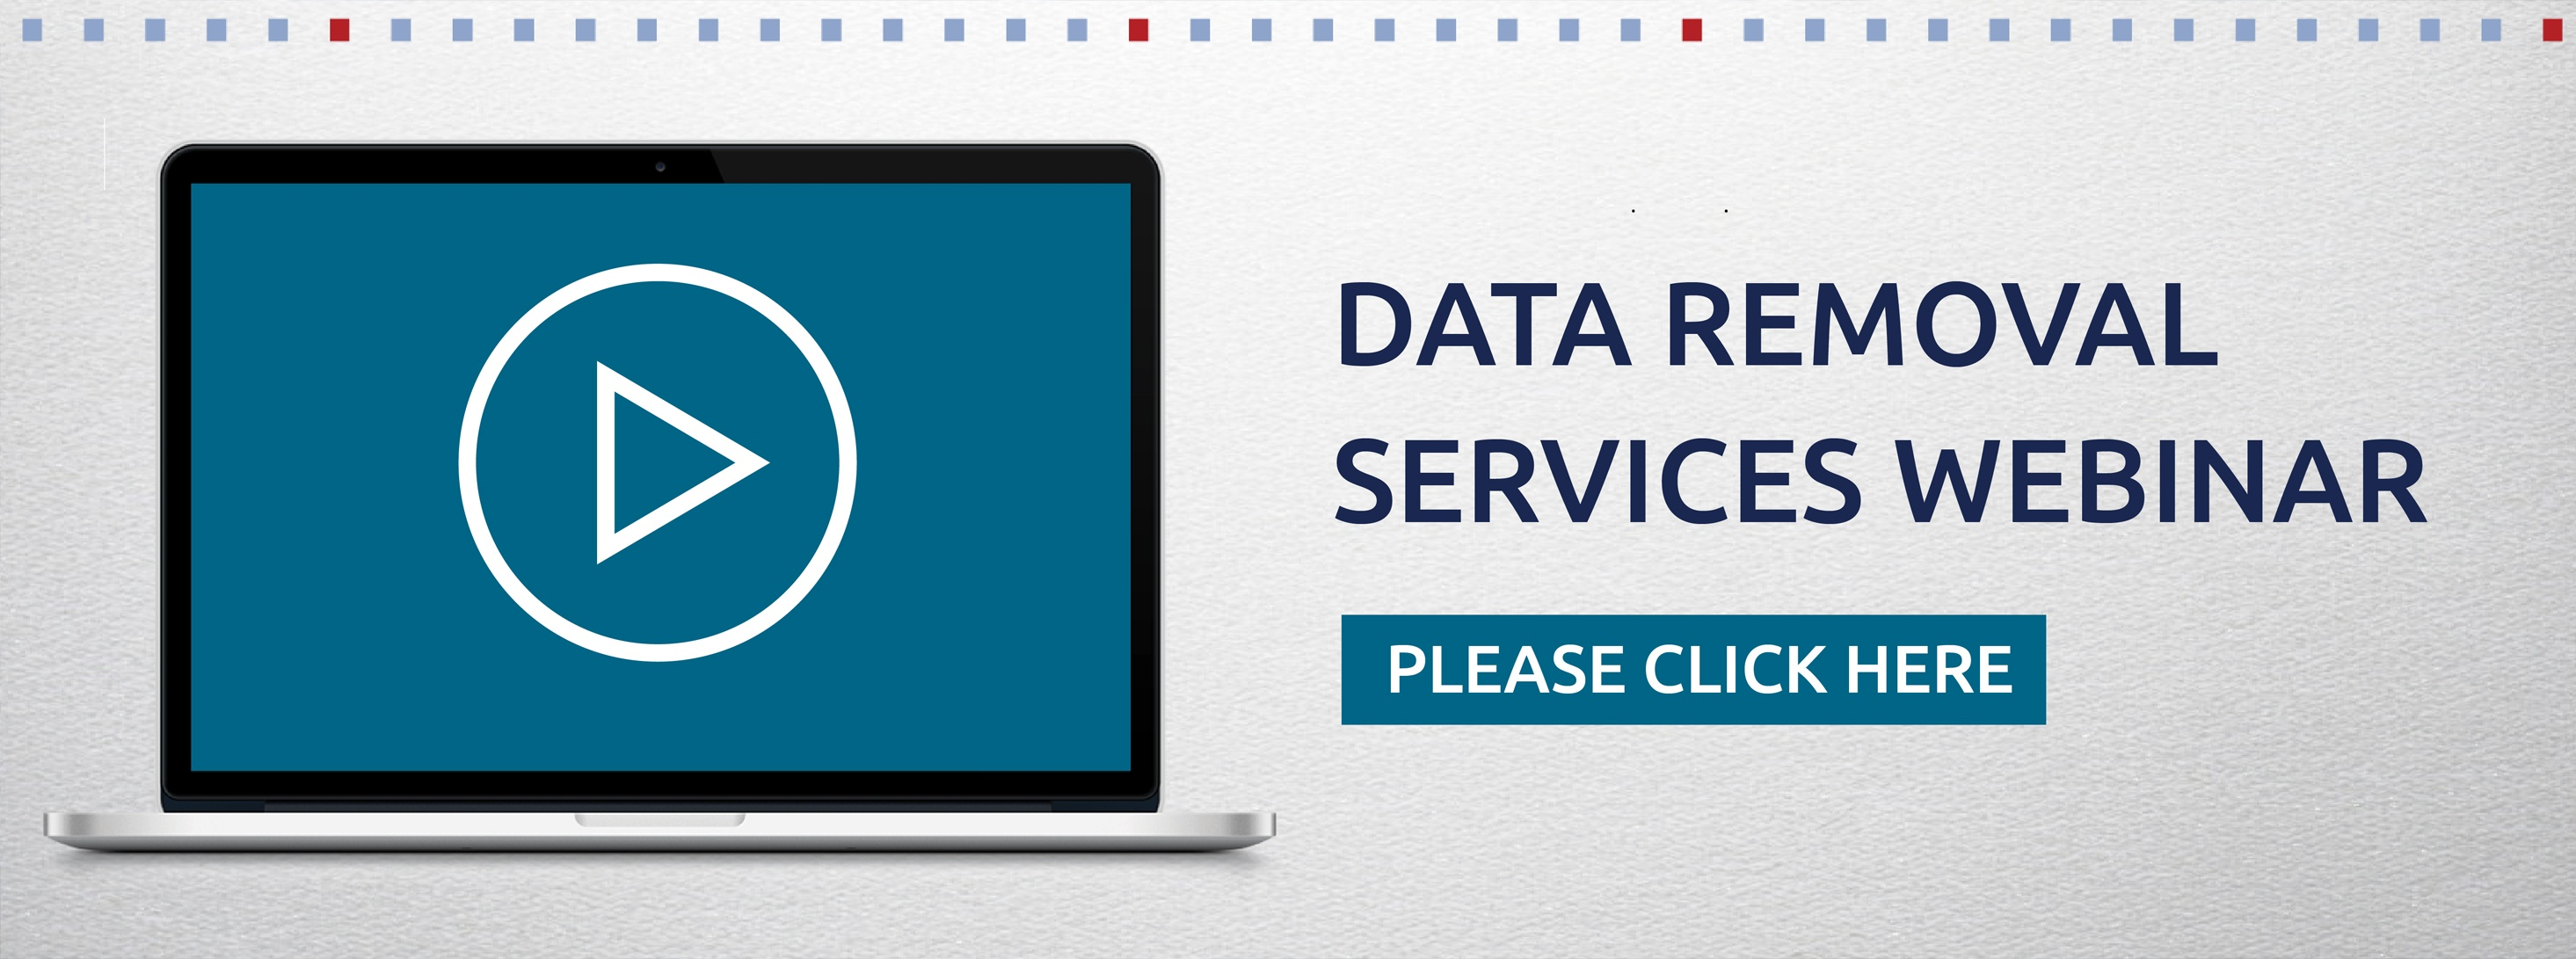 Data Removal Services Webinar CTA